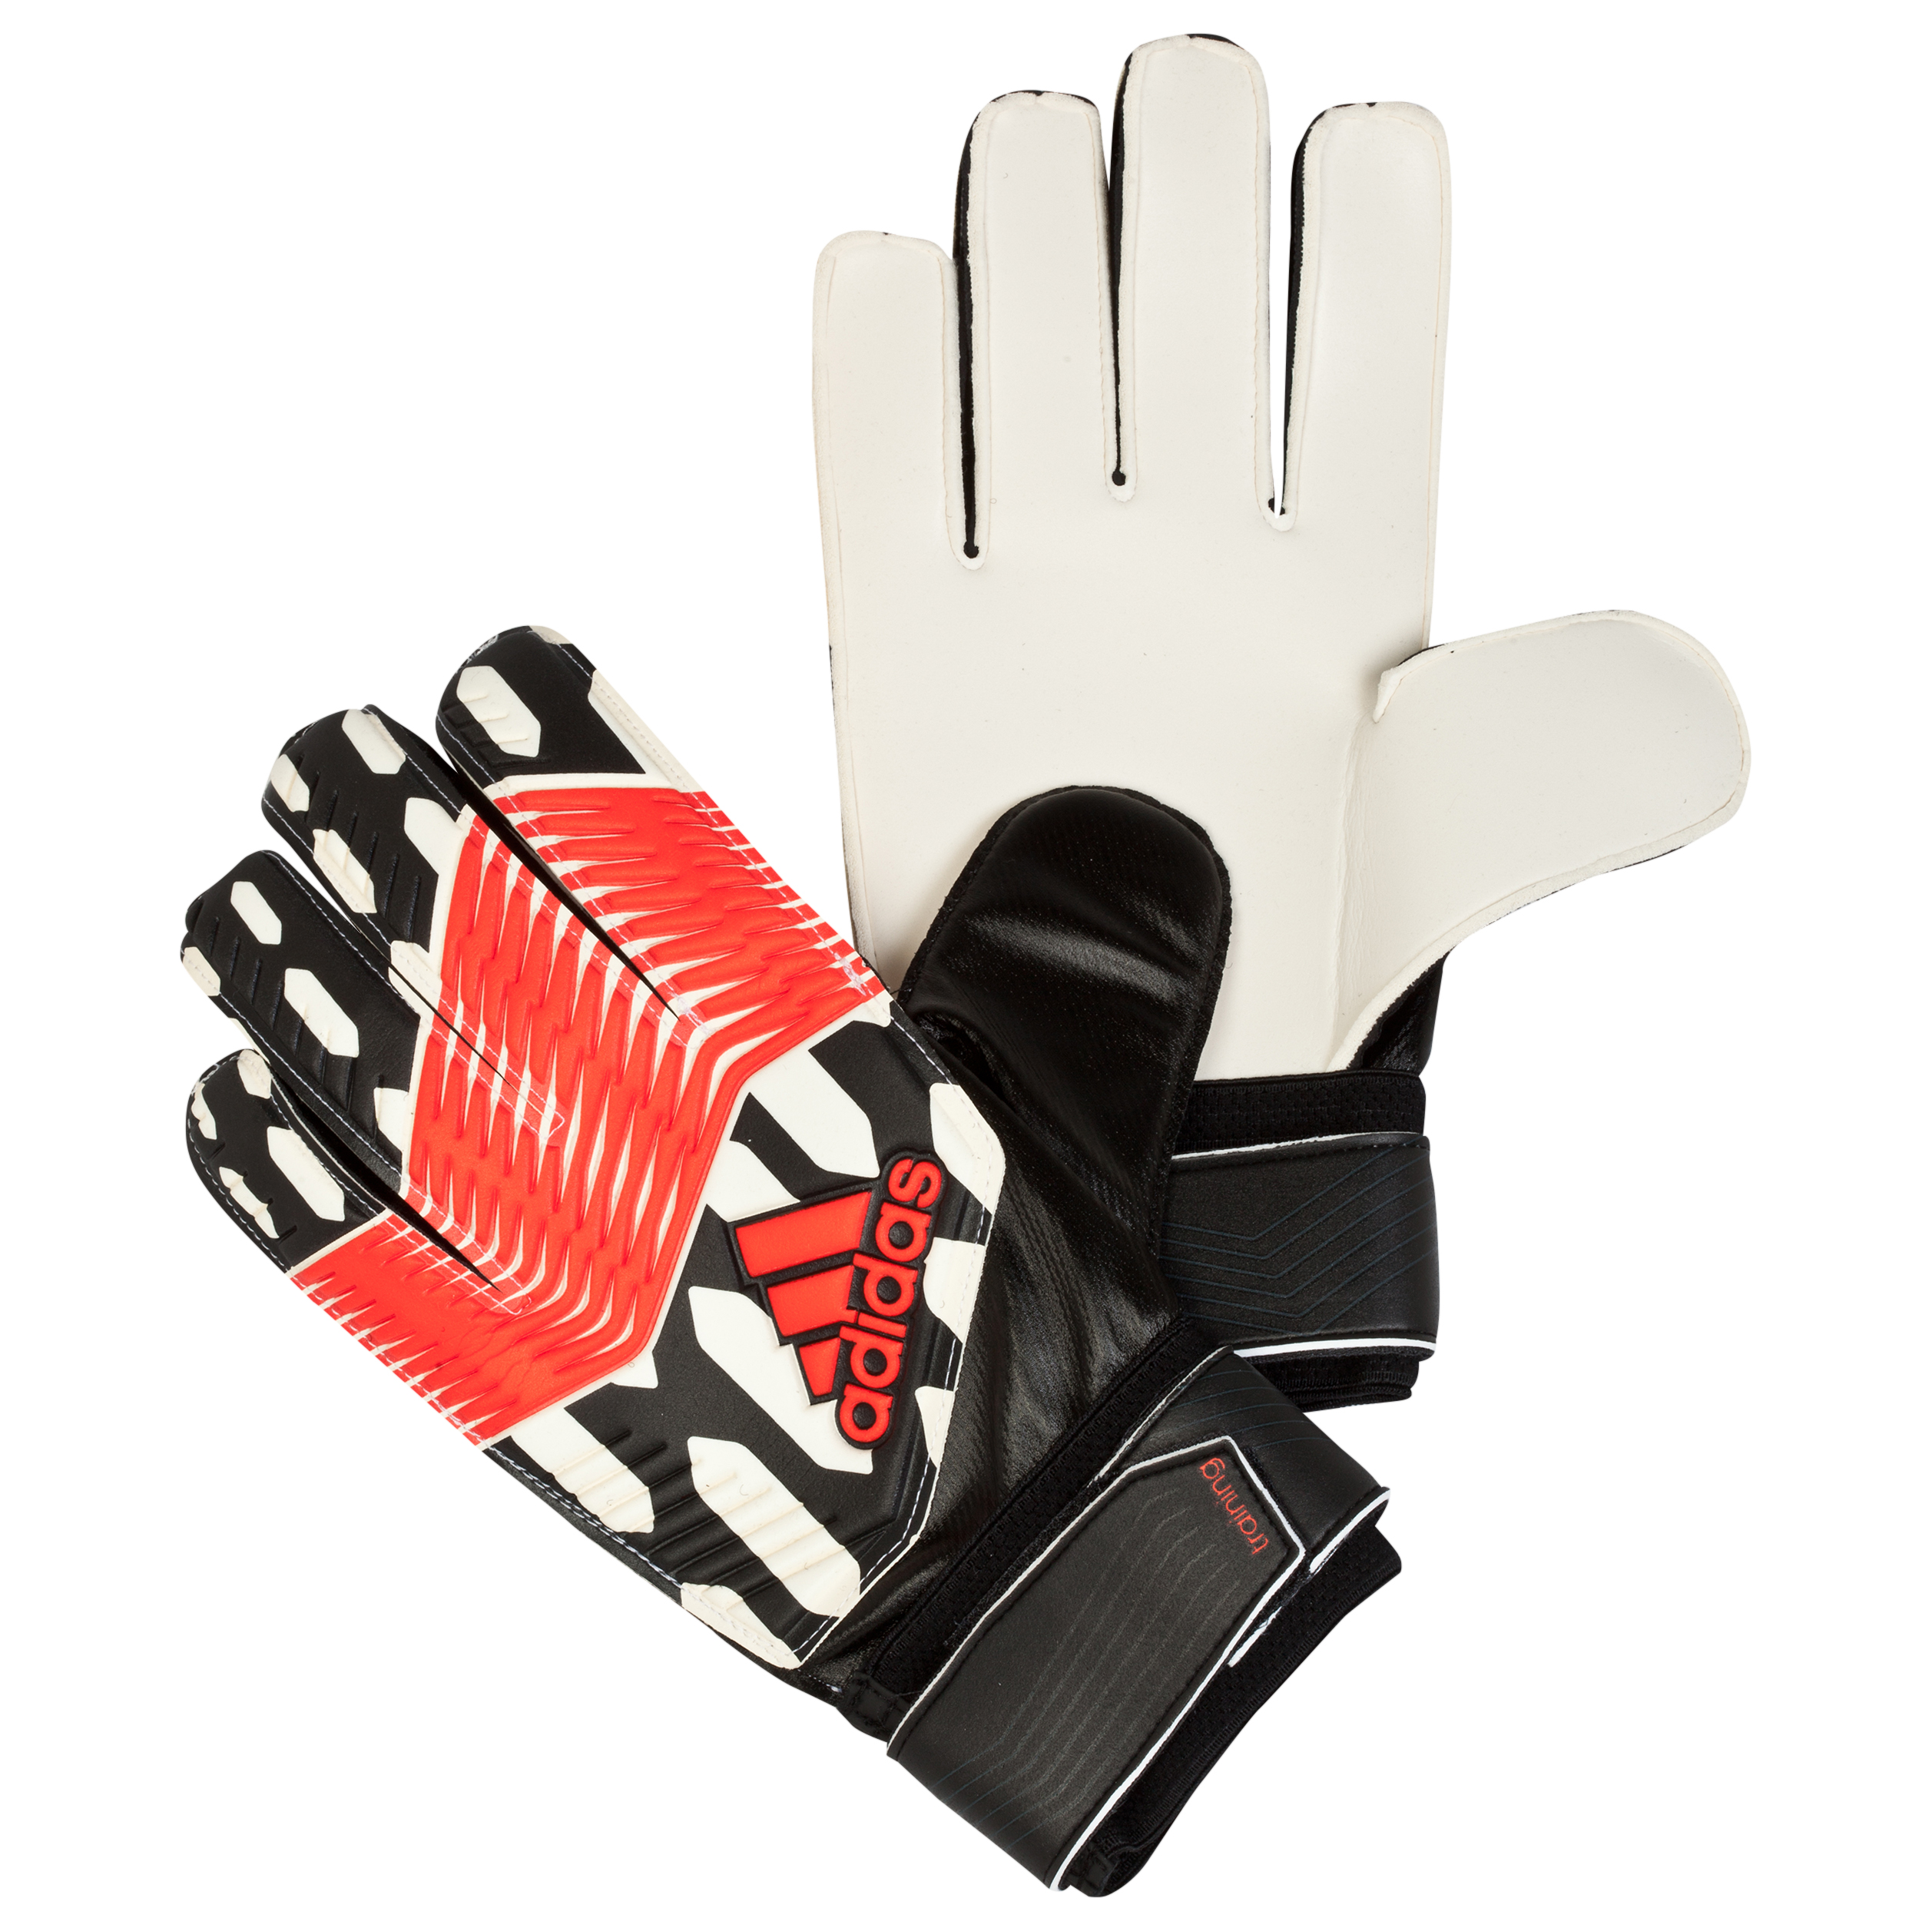 Adidas Predator Training Goalkeeper Gloves Black